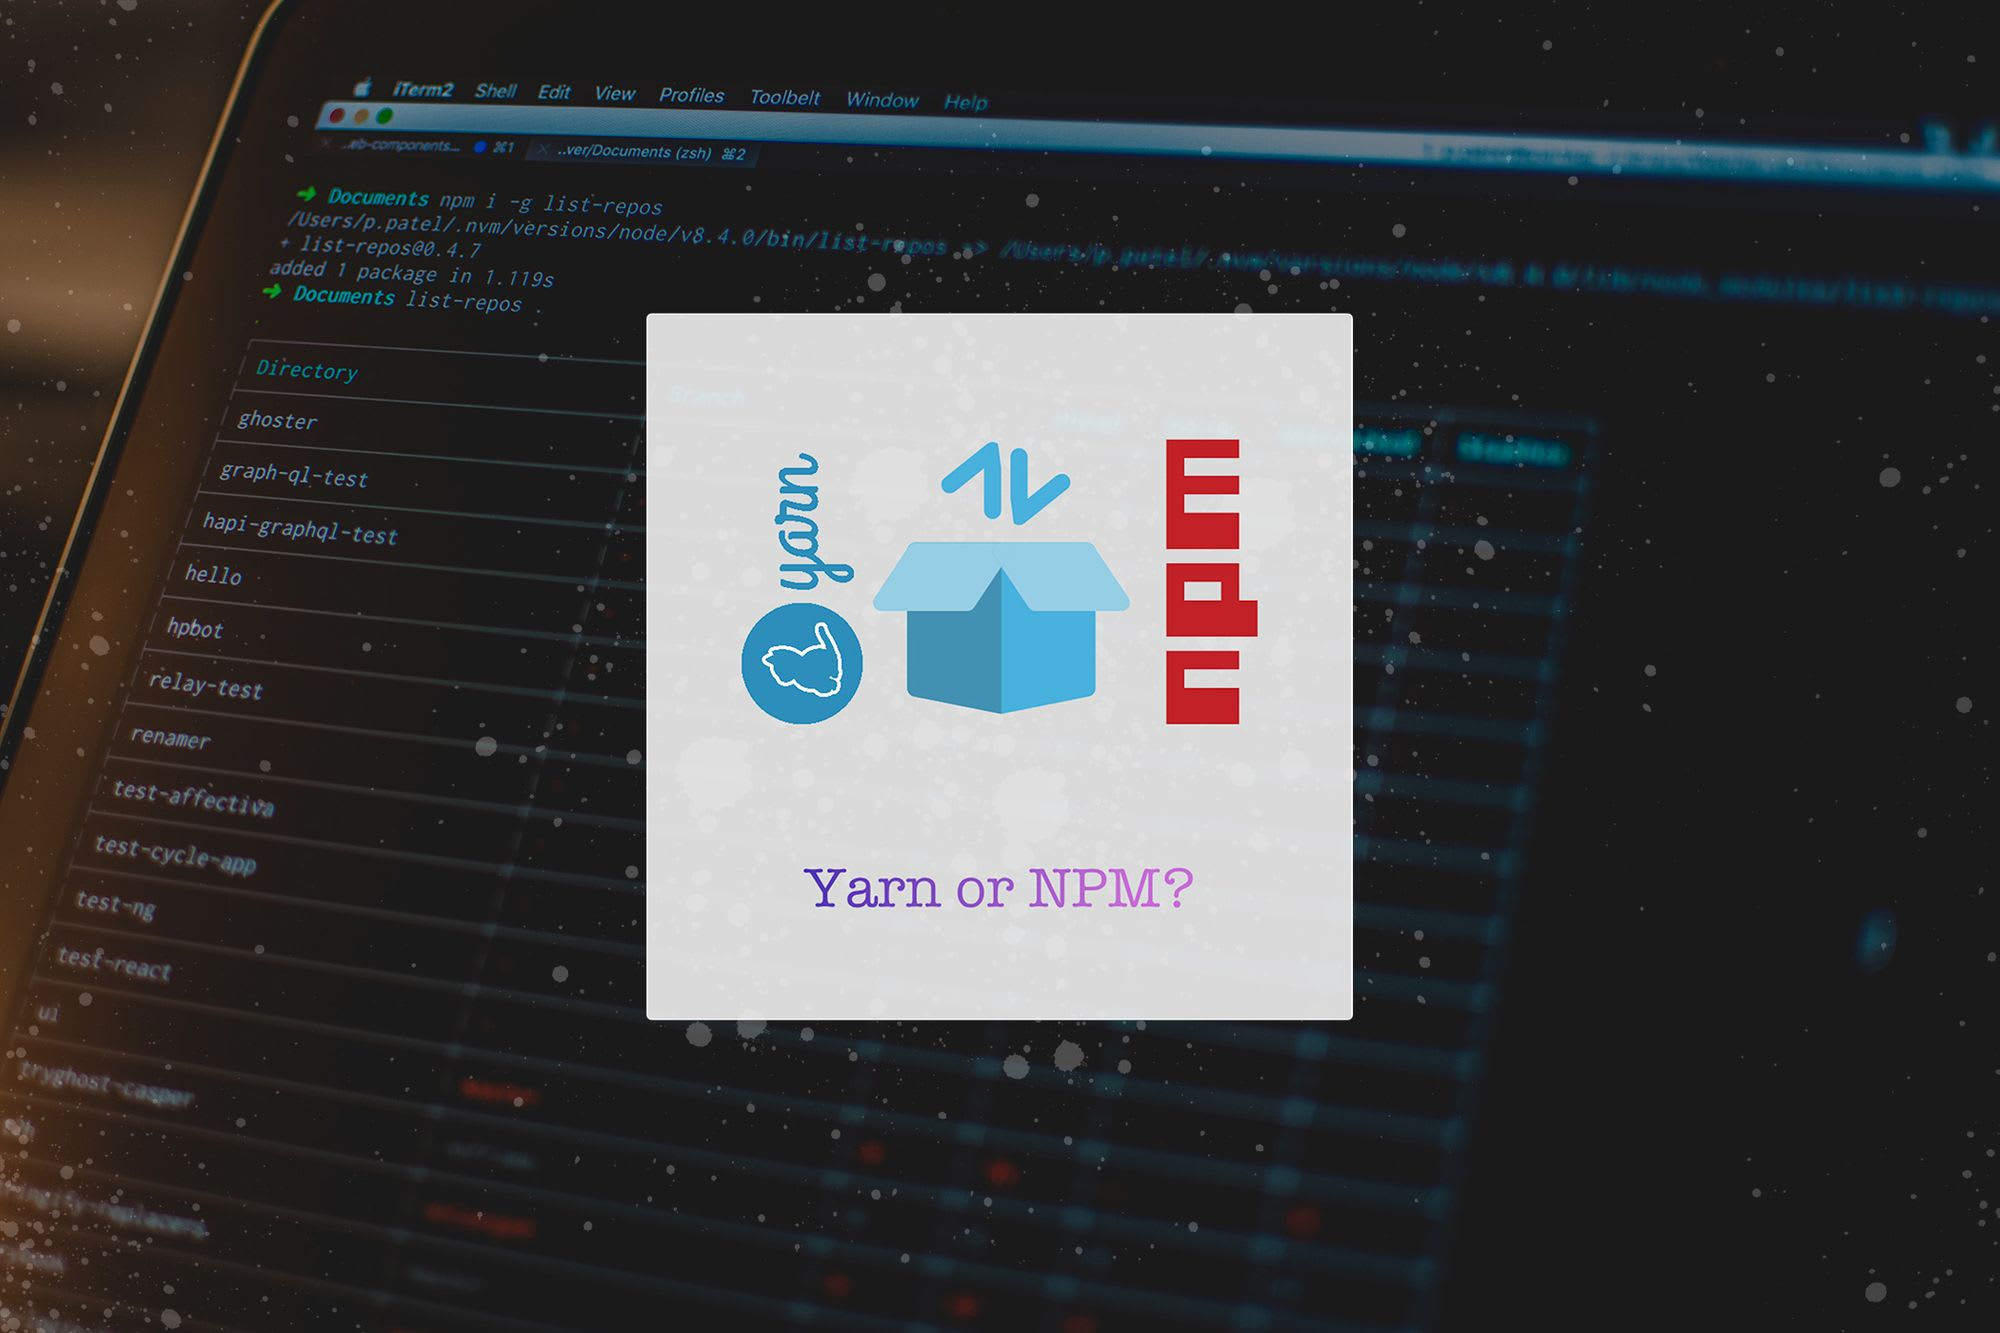 Yarn or npm: What's your preferred package manager?